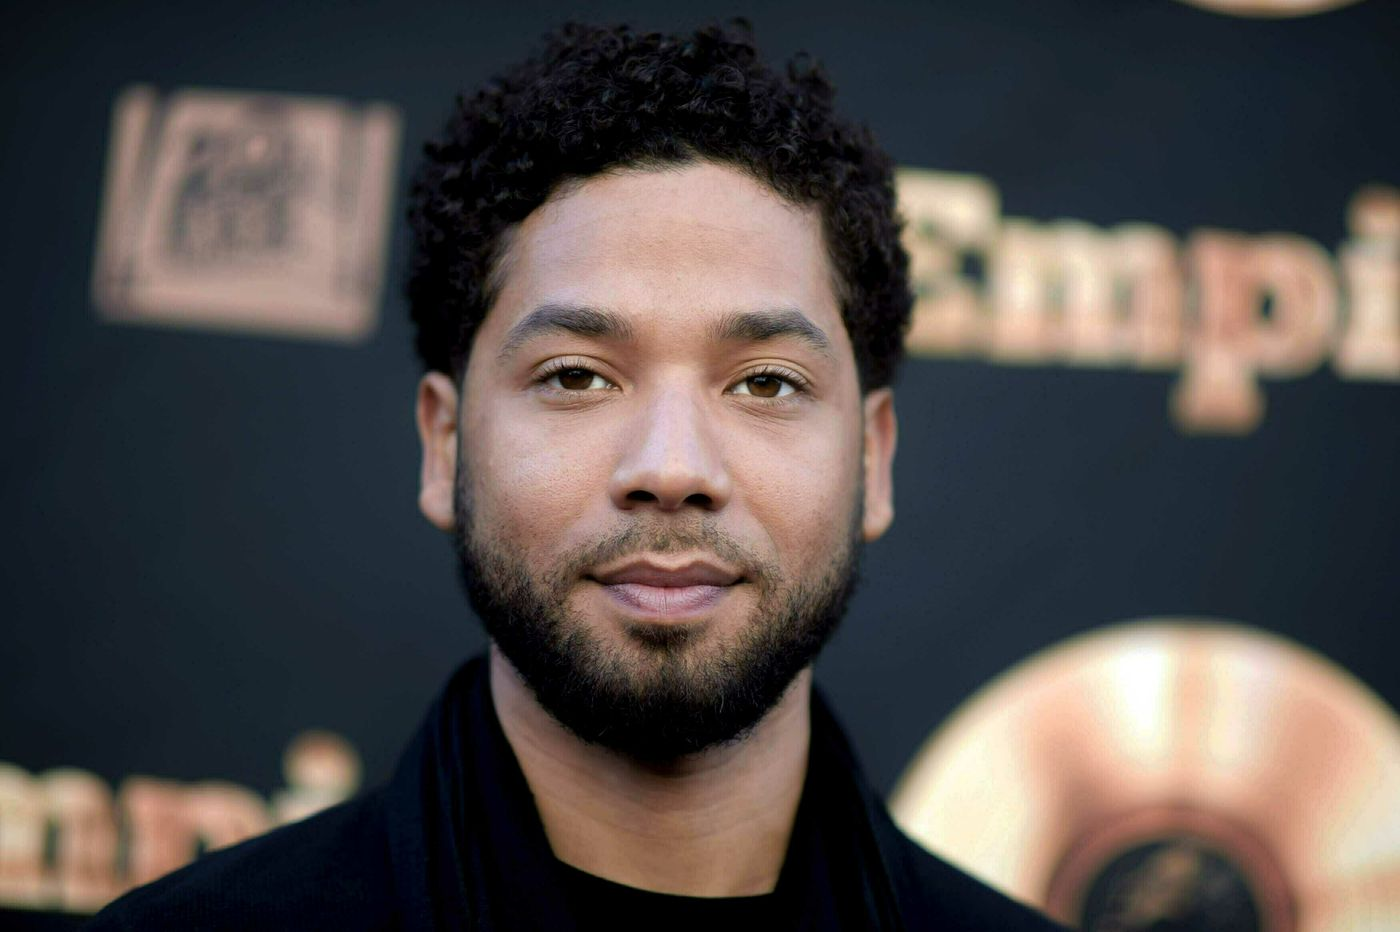 Jussie Smollett removed from 'Empire' after arrest in Chicago